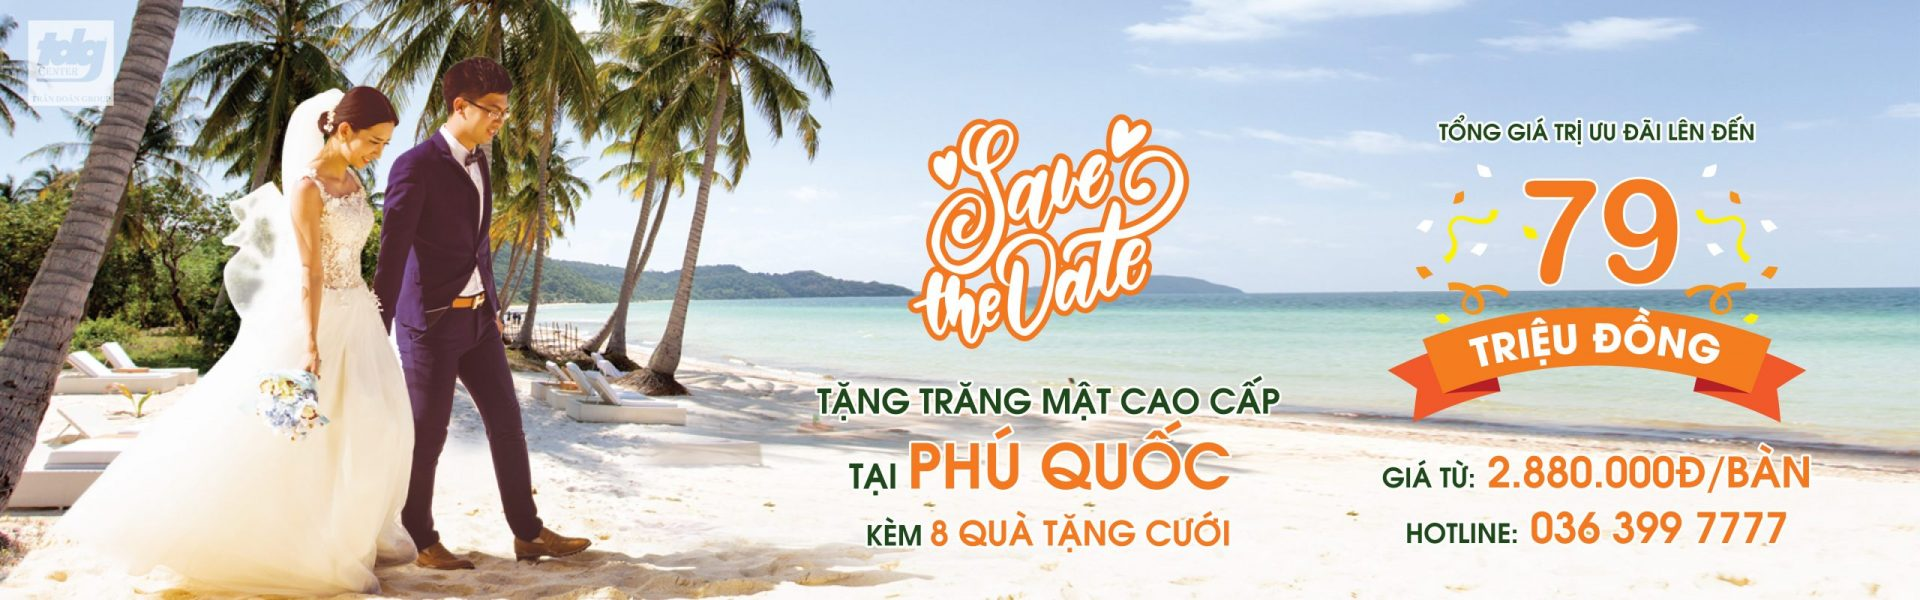 standee phu quoc